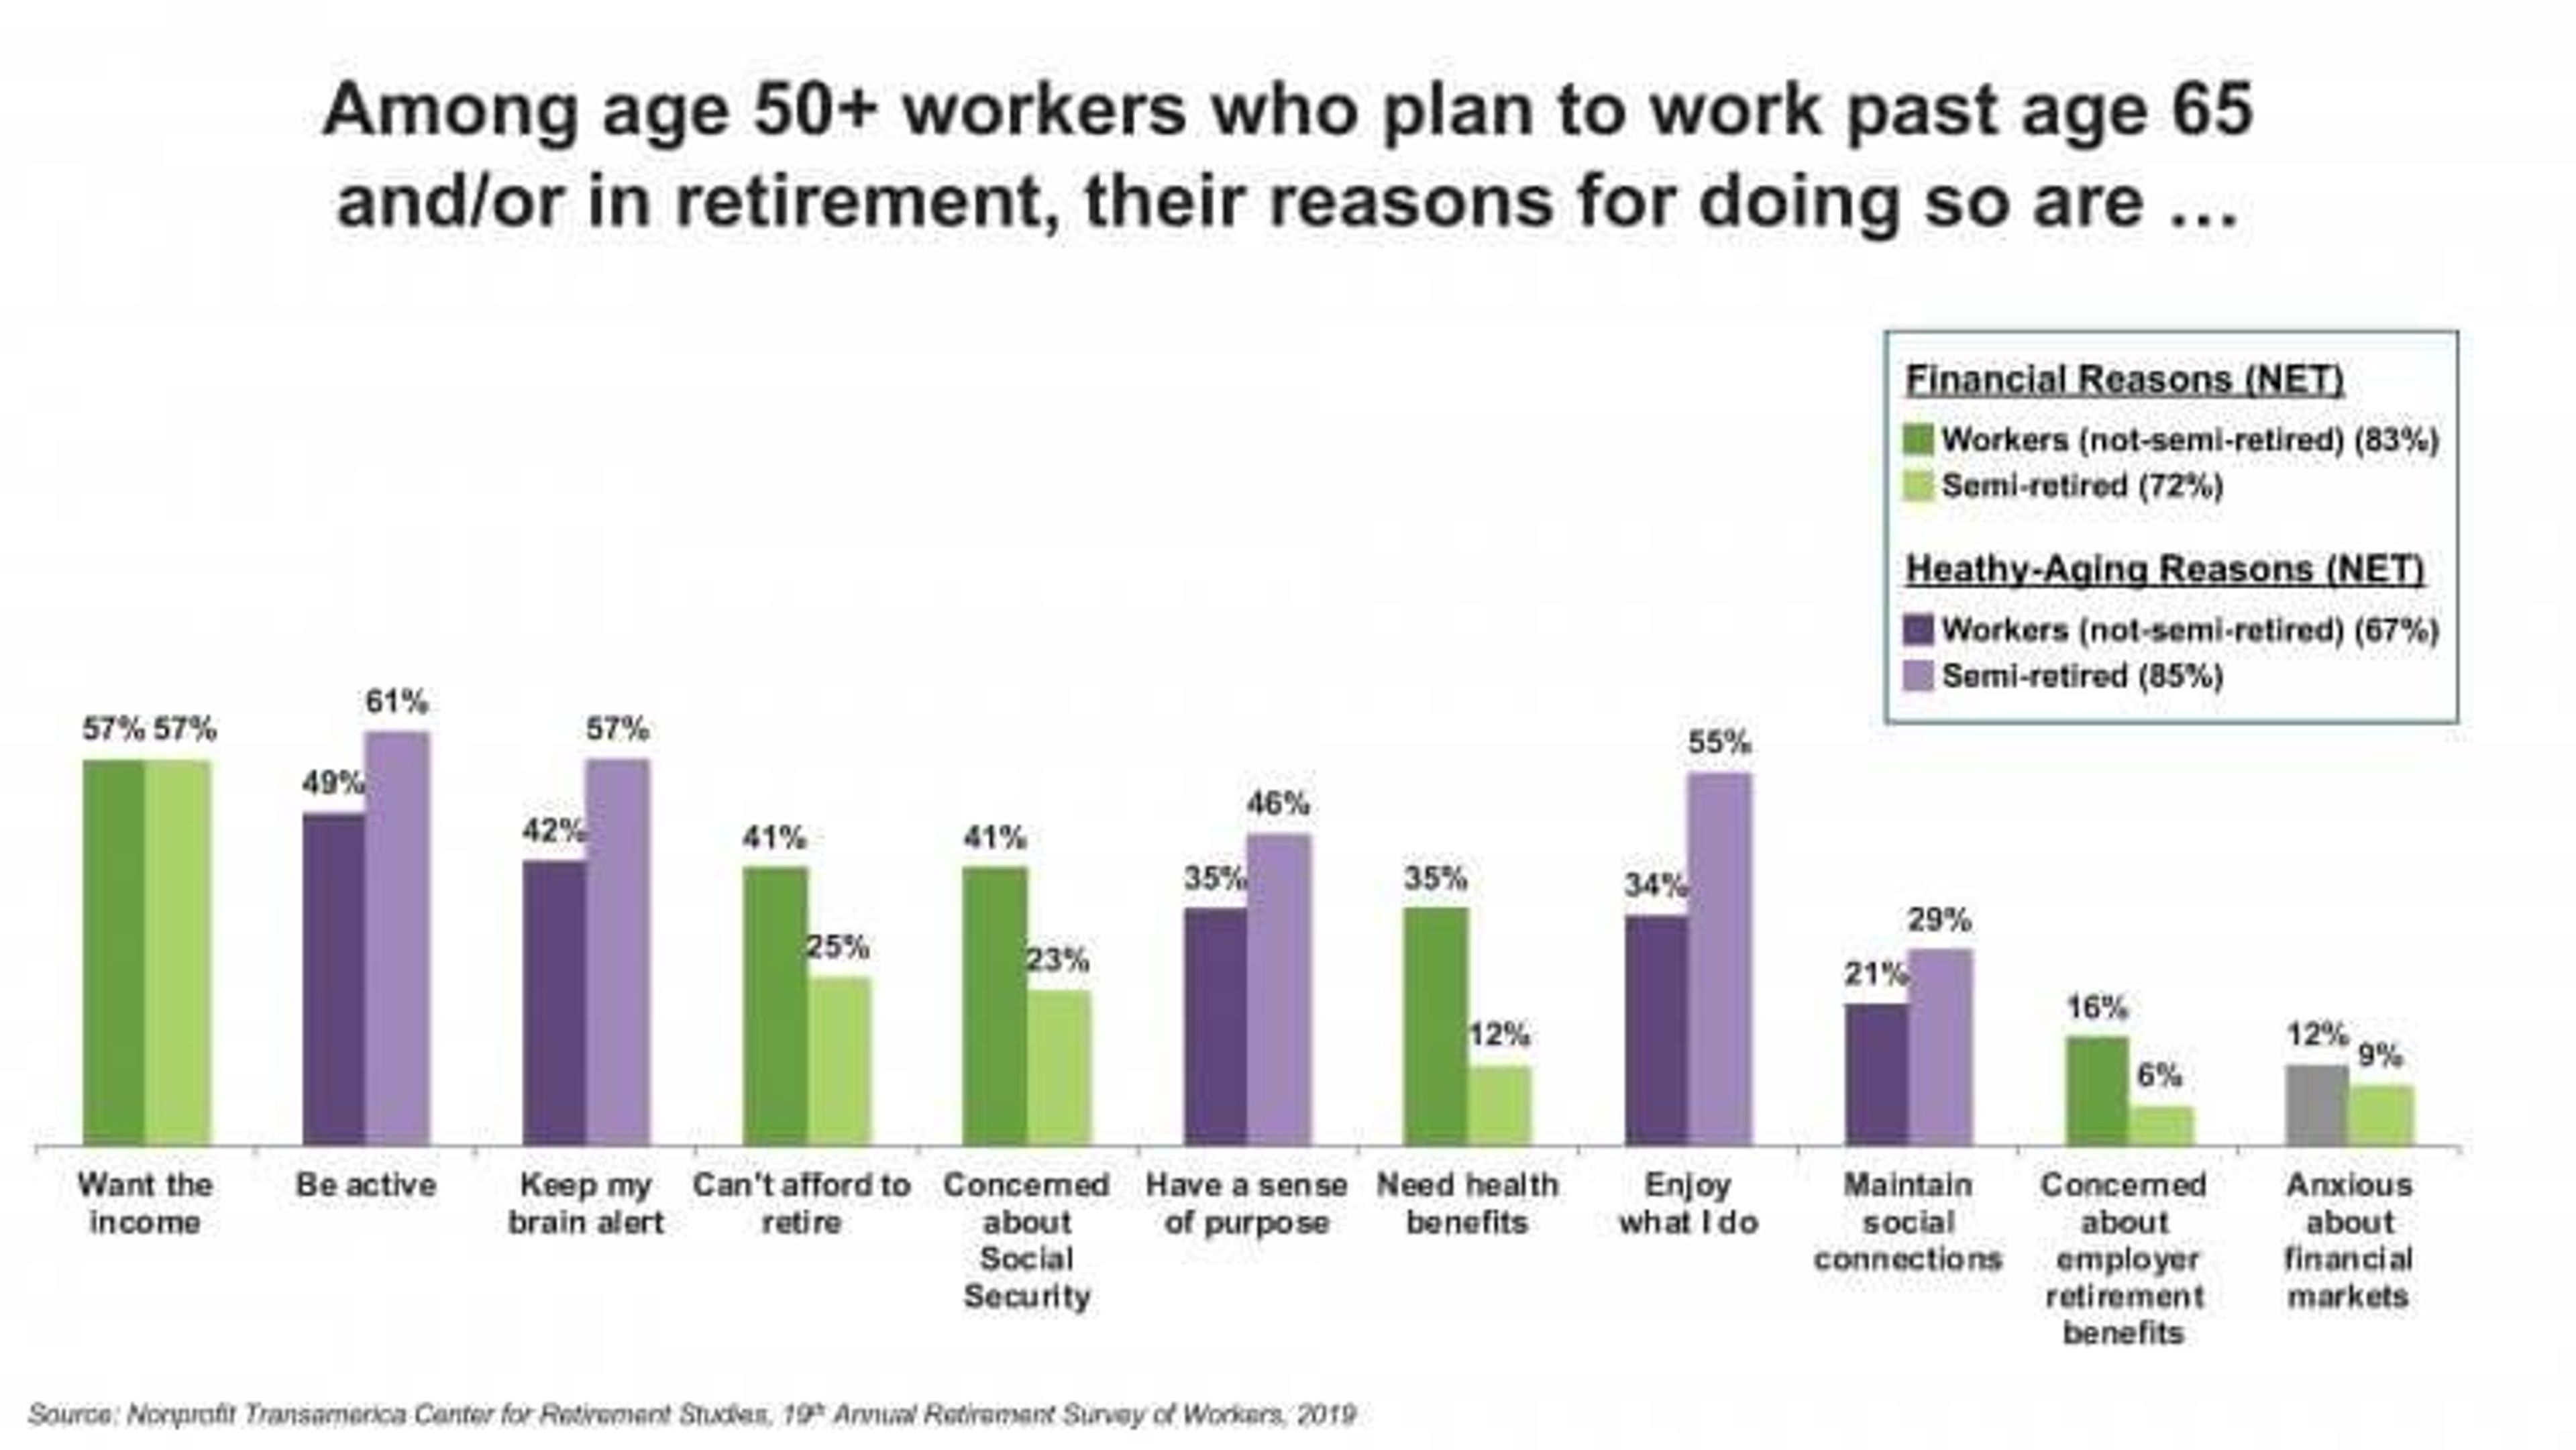 Age 50 Plus Workers_Reasons for Working Past 65 or in Retiremen